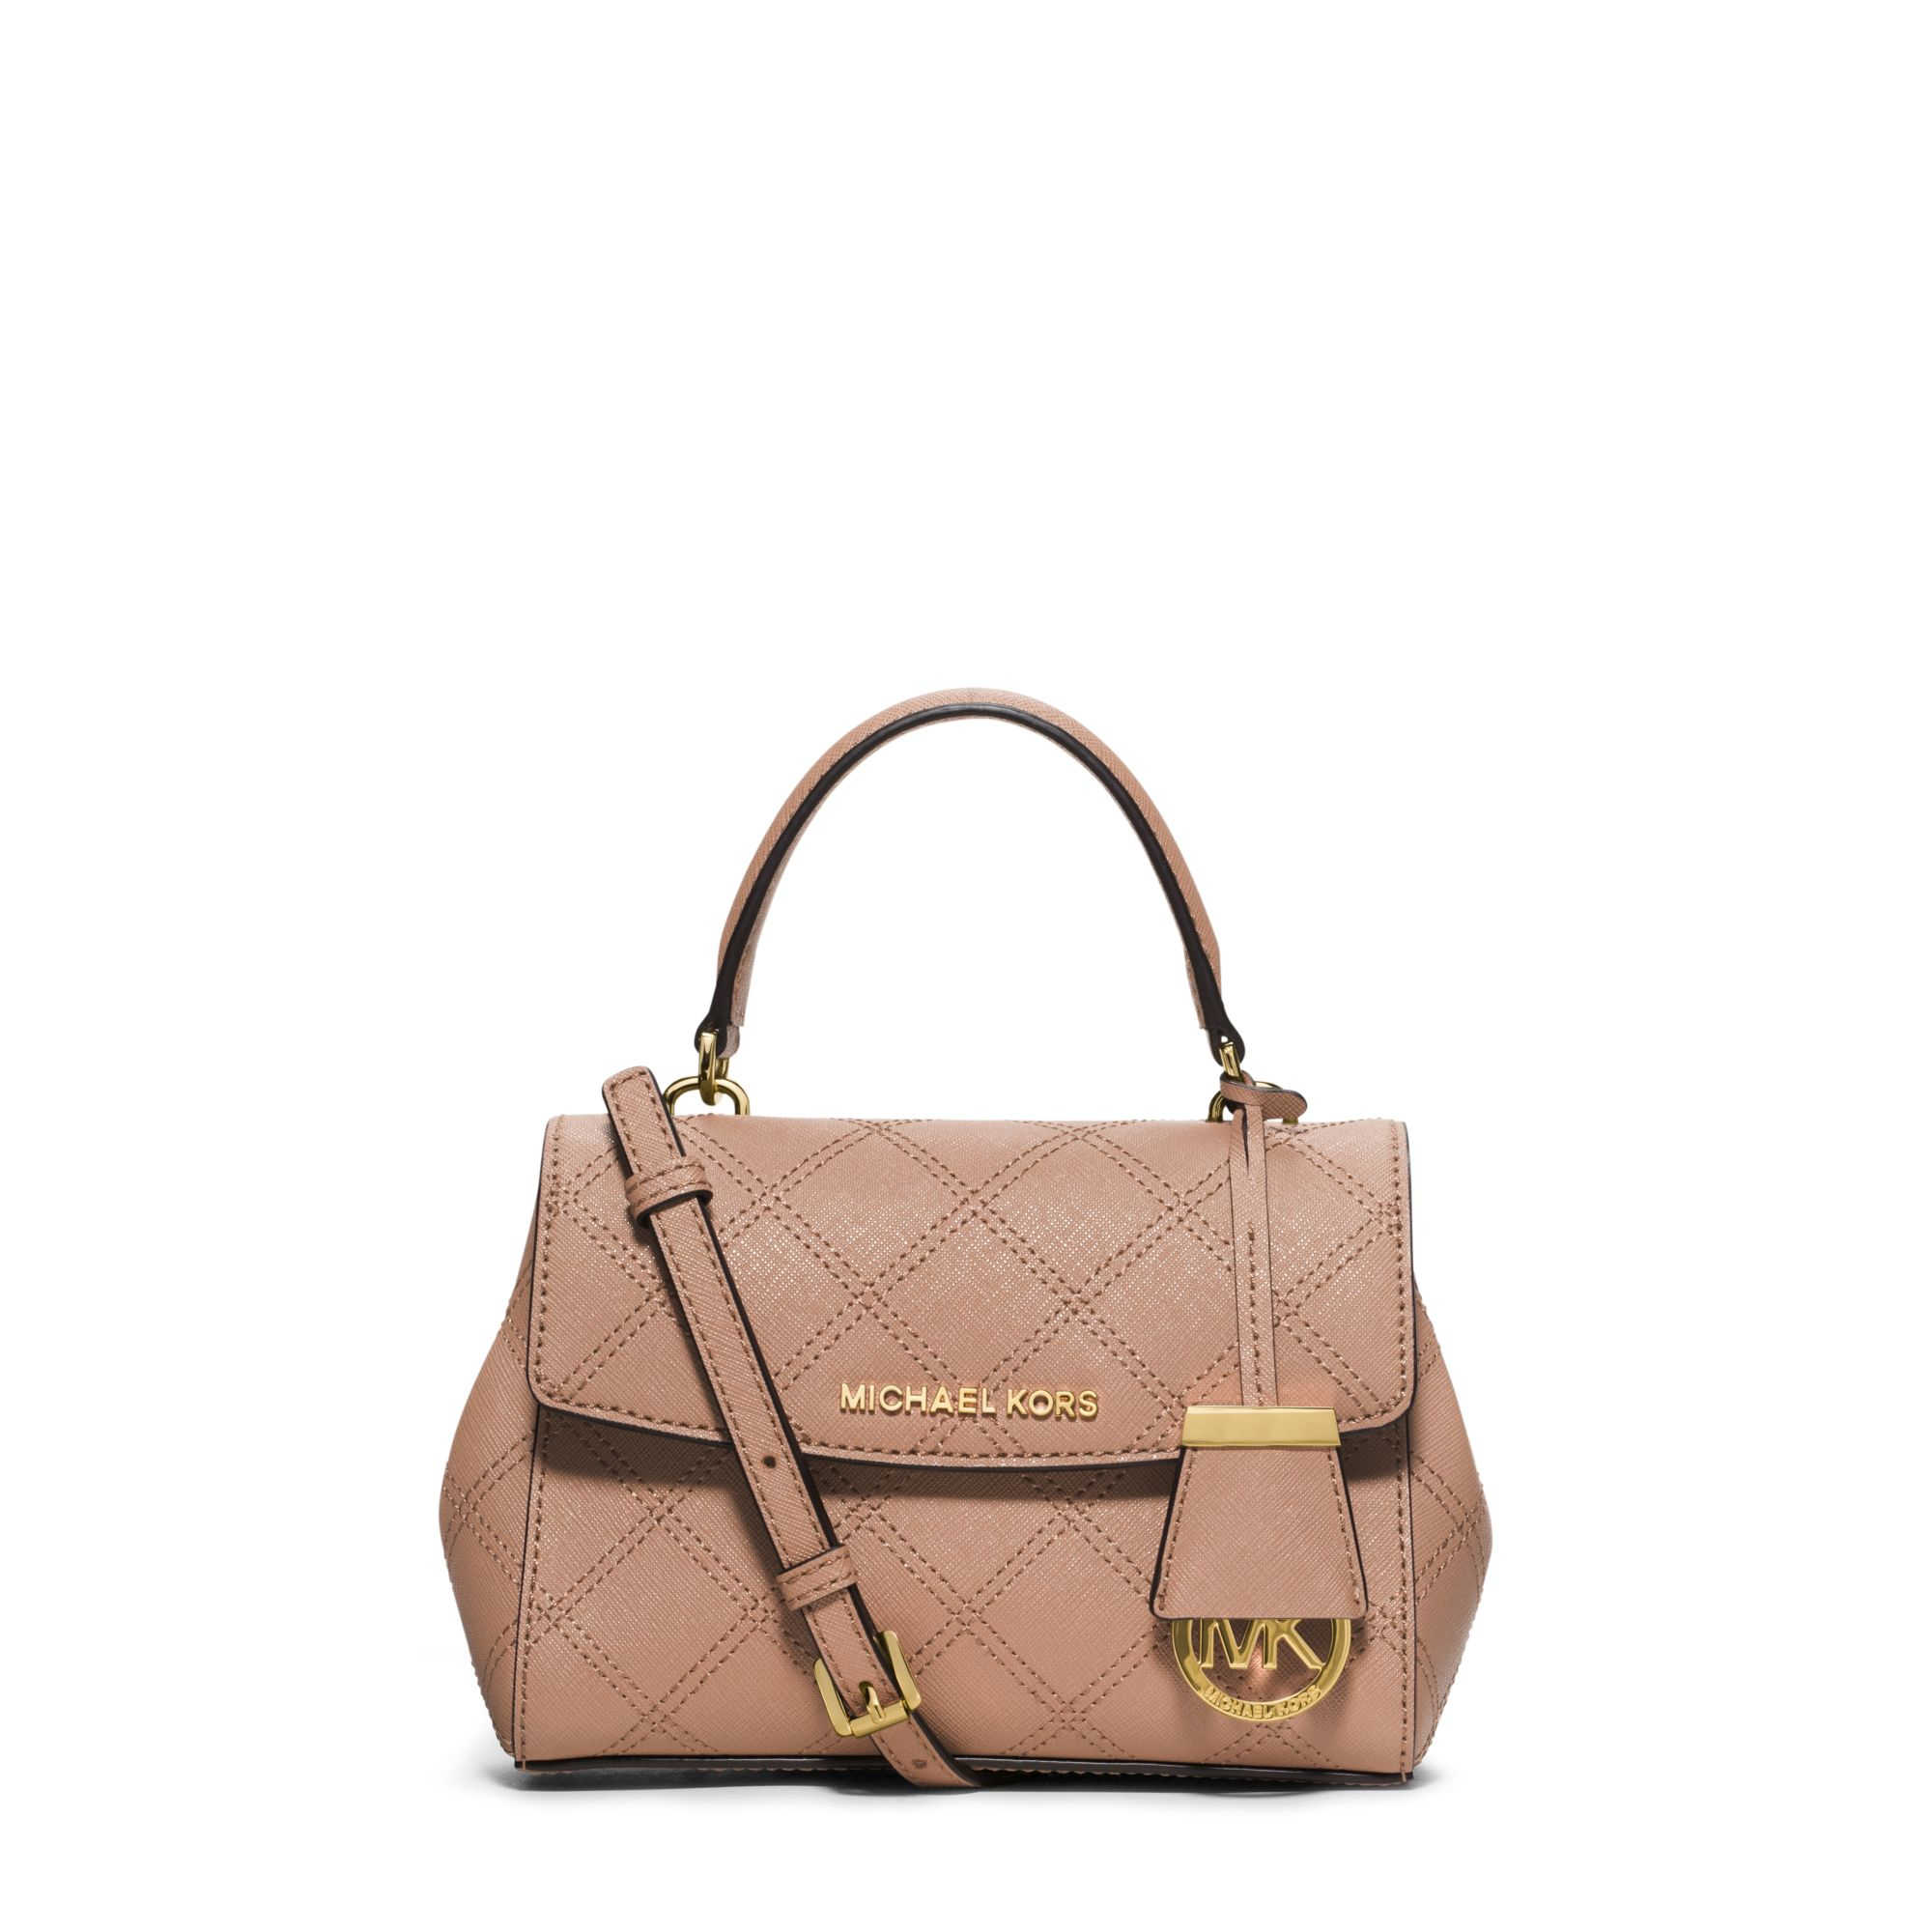 Lyst Michael Kors Ava Saffiano Leather Cross Body Bag In